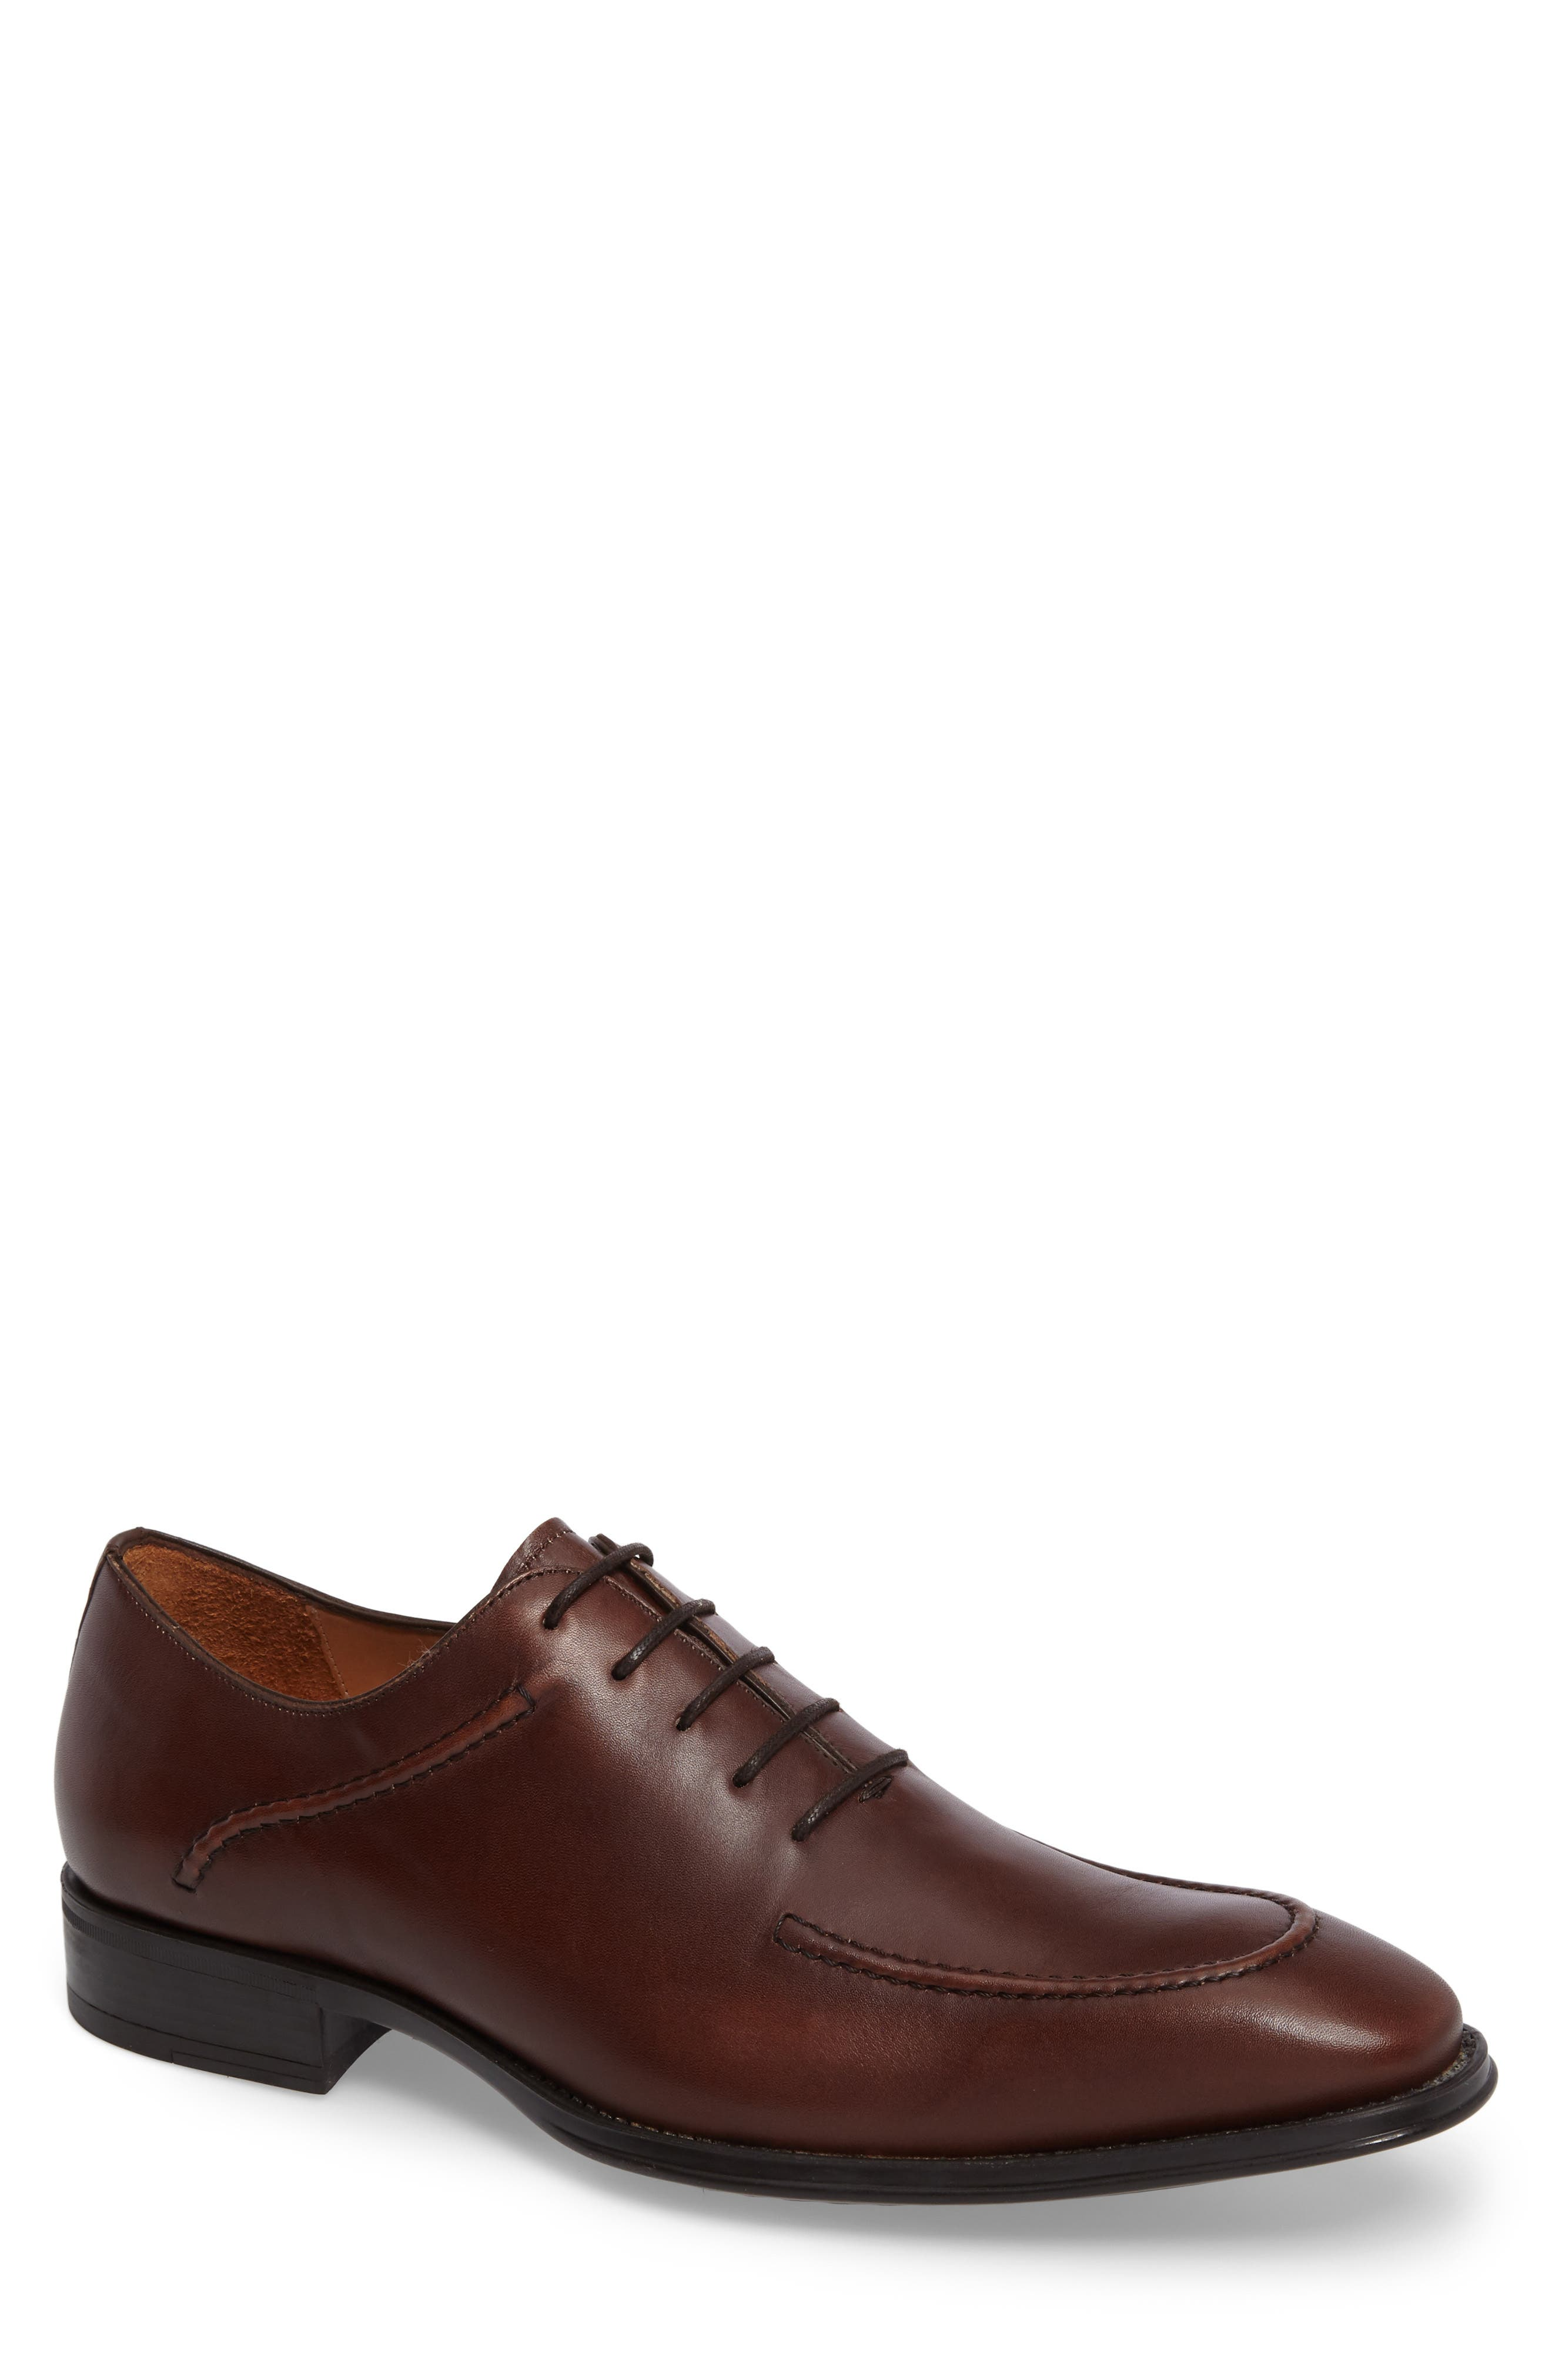 Velez Moc Toe Oxford,                         Main,                         color, Brown Leather